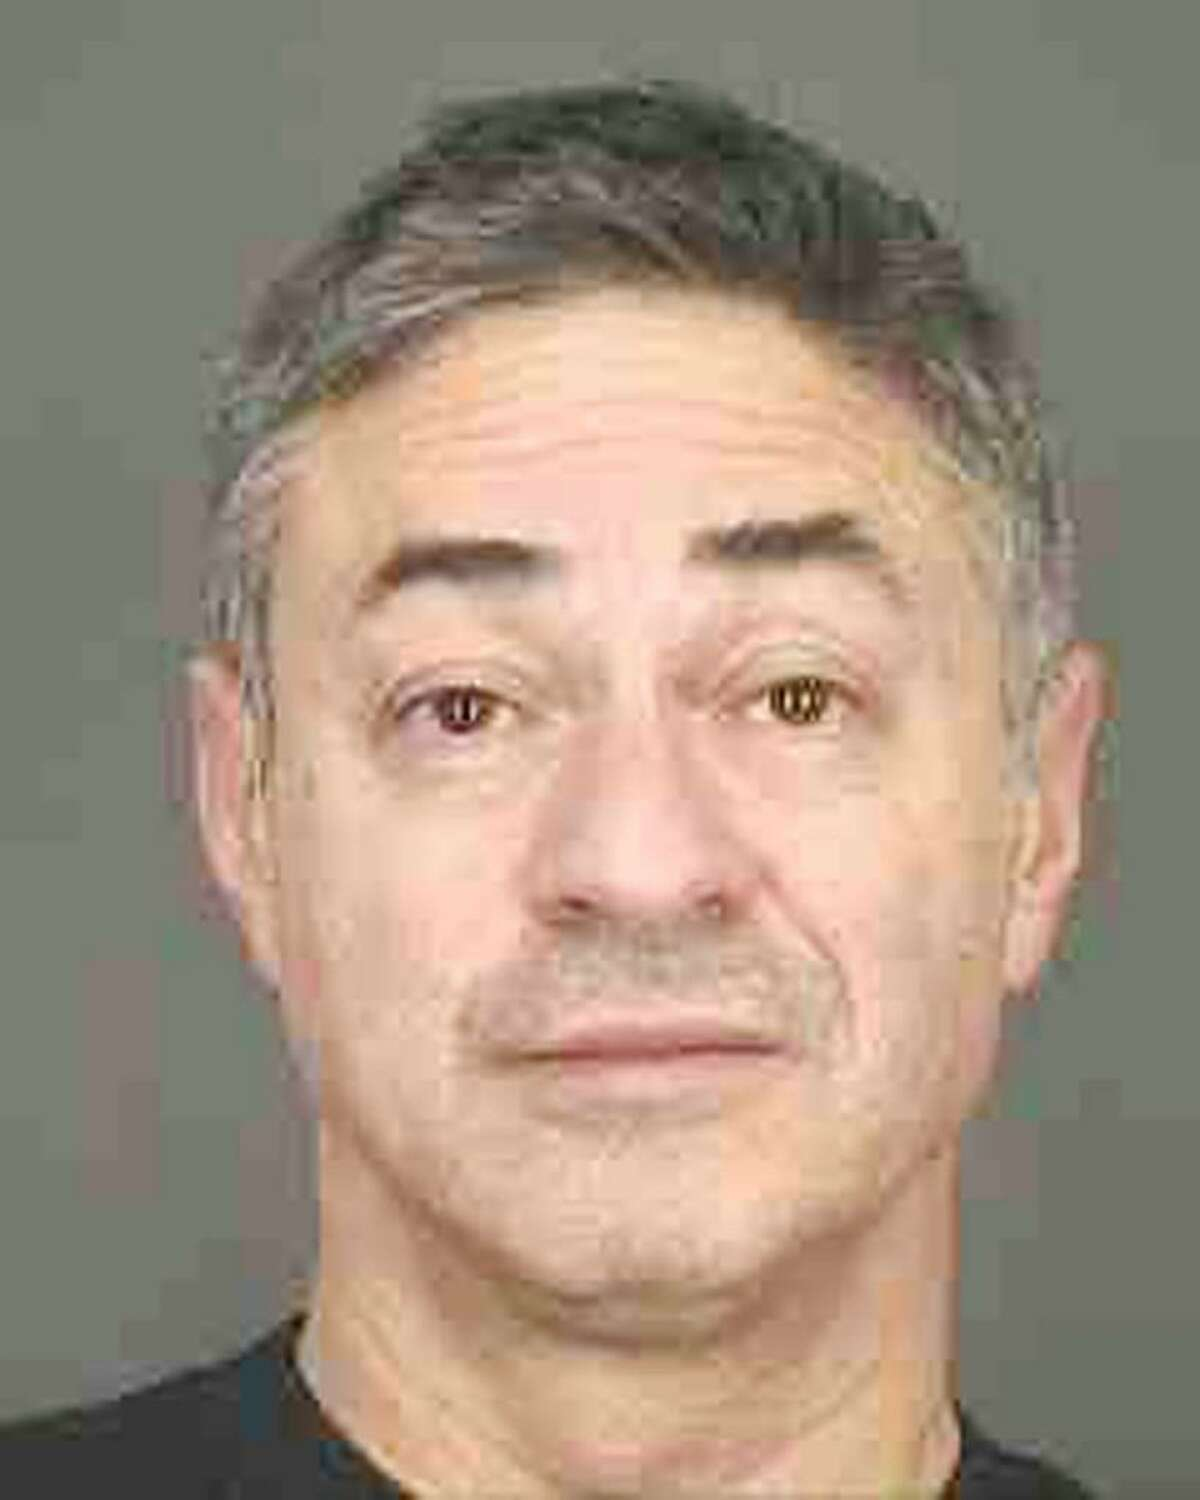 Clifford Berken, 56, of Stamford. Photo courtesy of the Westchester District Attorney's office